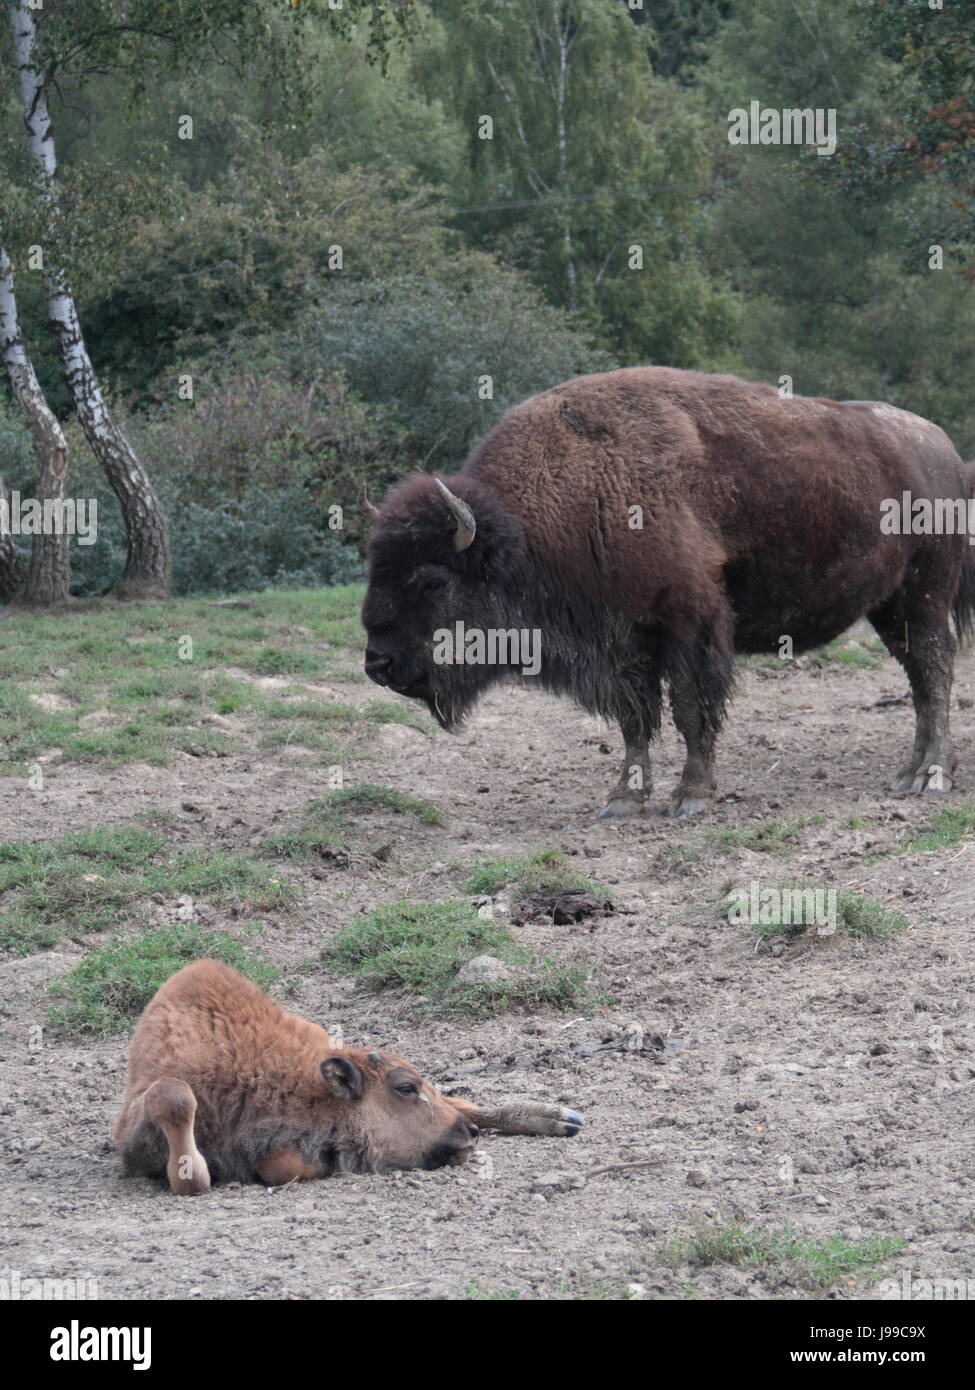 bison - Stock Image